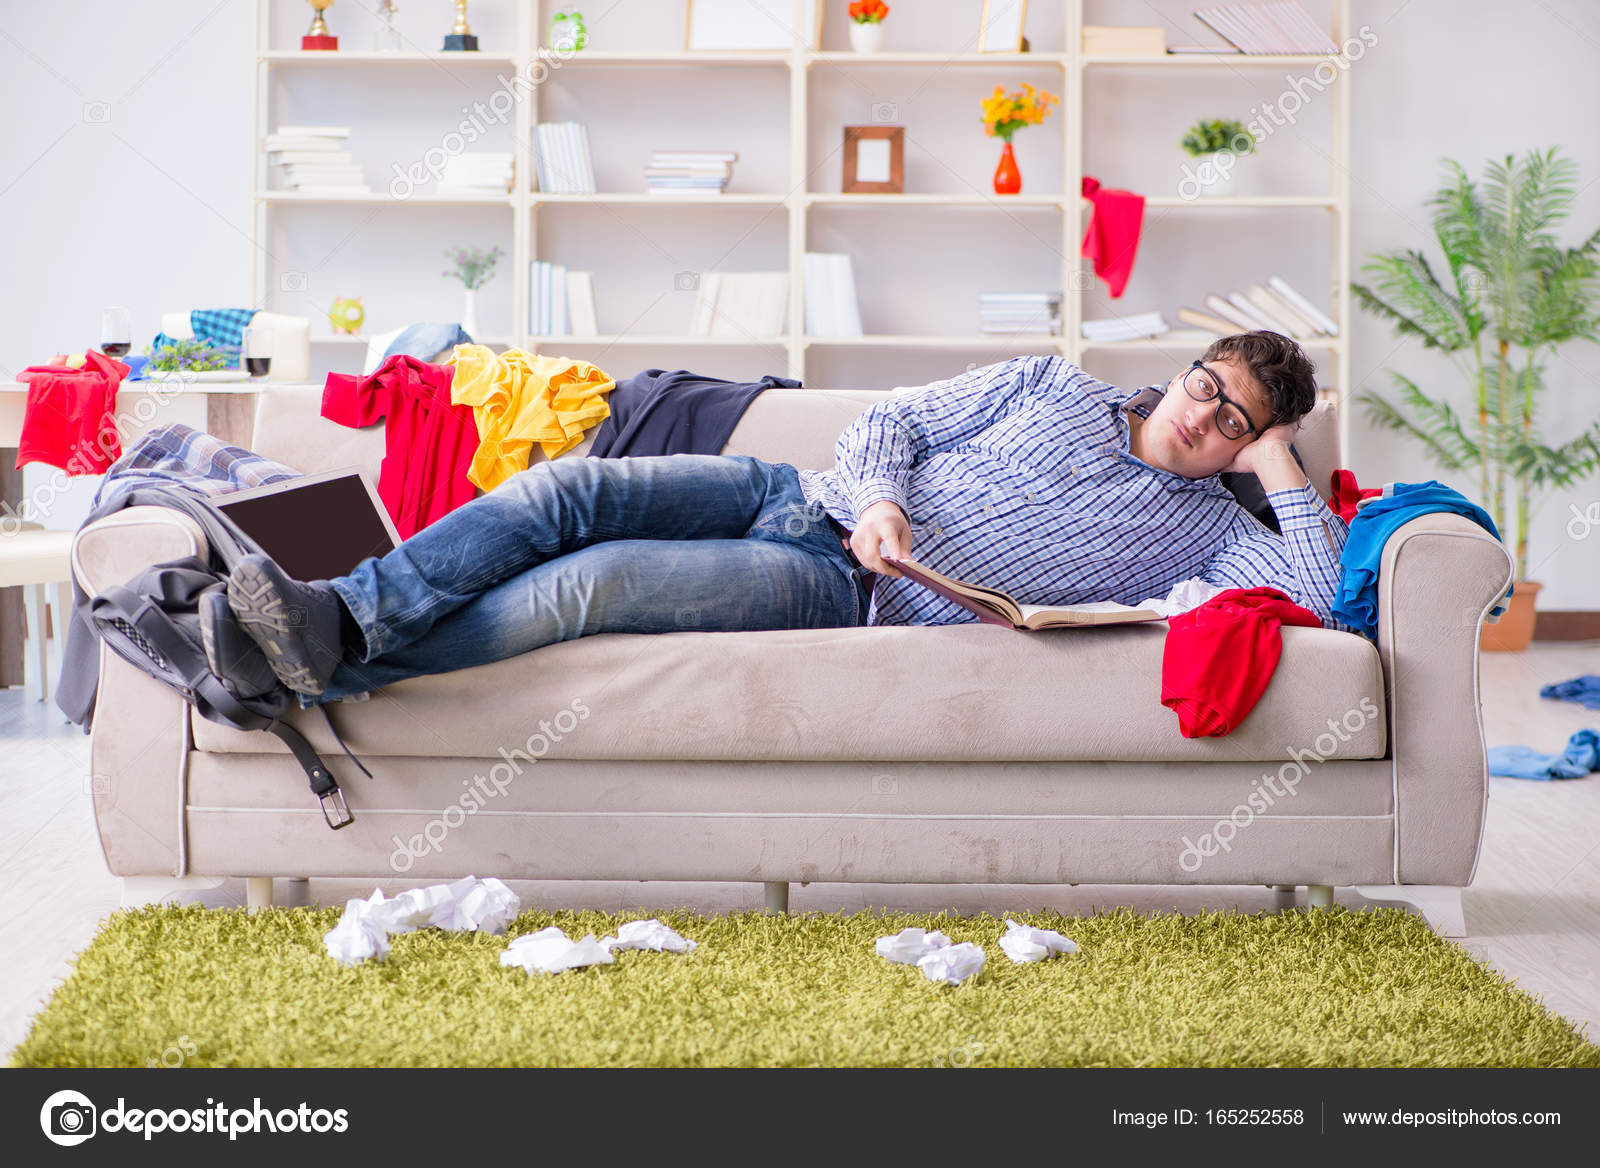 Depositphotos 165252558 stock photo young man working studying in